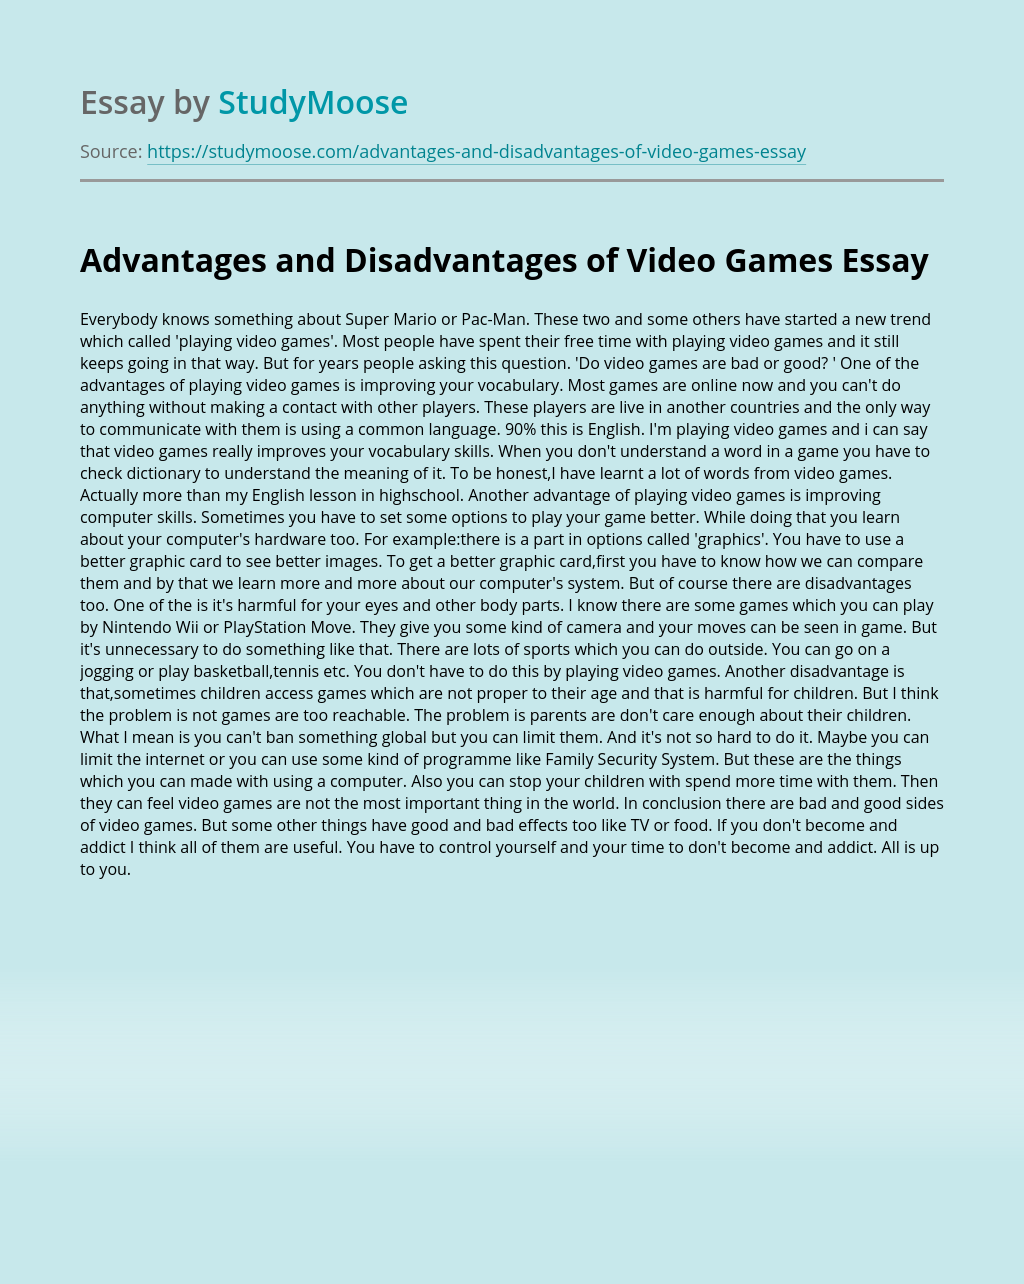 Advantages and Disadvantages of Video Games